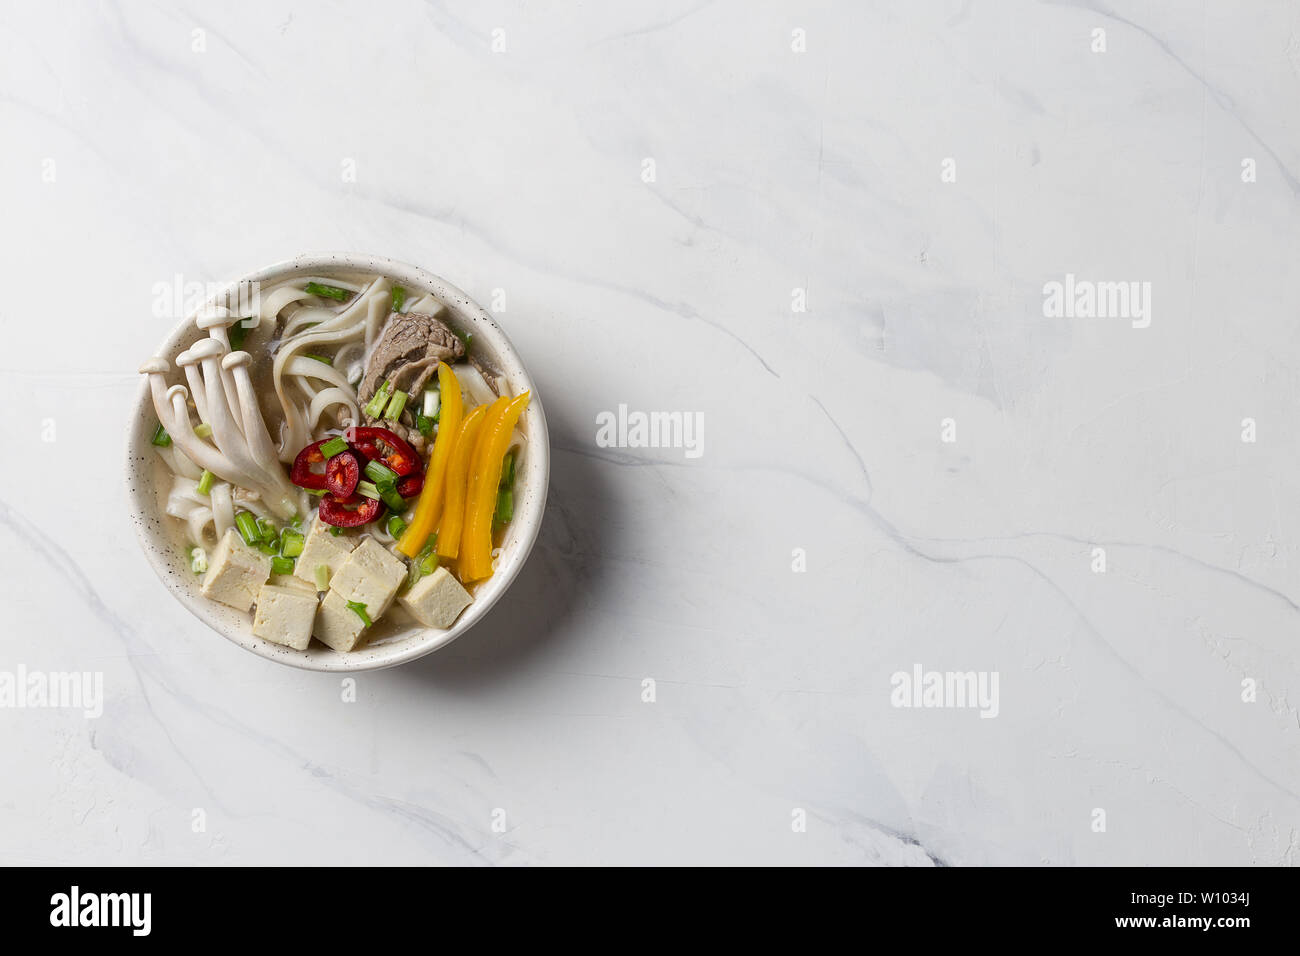 Heated noodle soup with beef, mushrooms and vegetables on white background. Copy space for text. - Stock Image